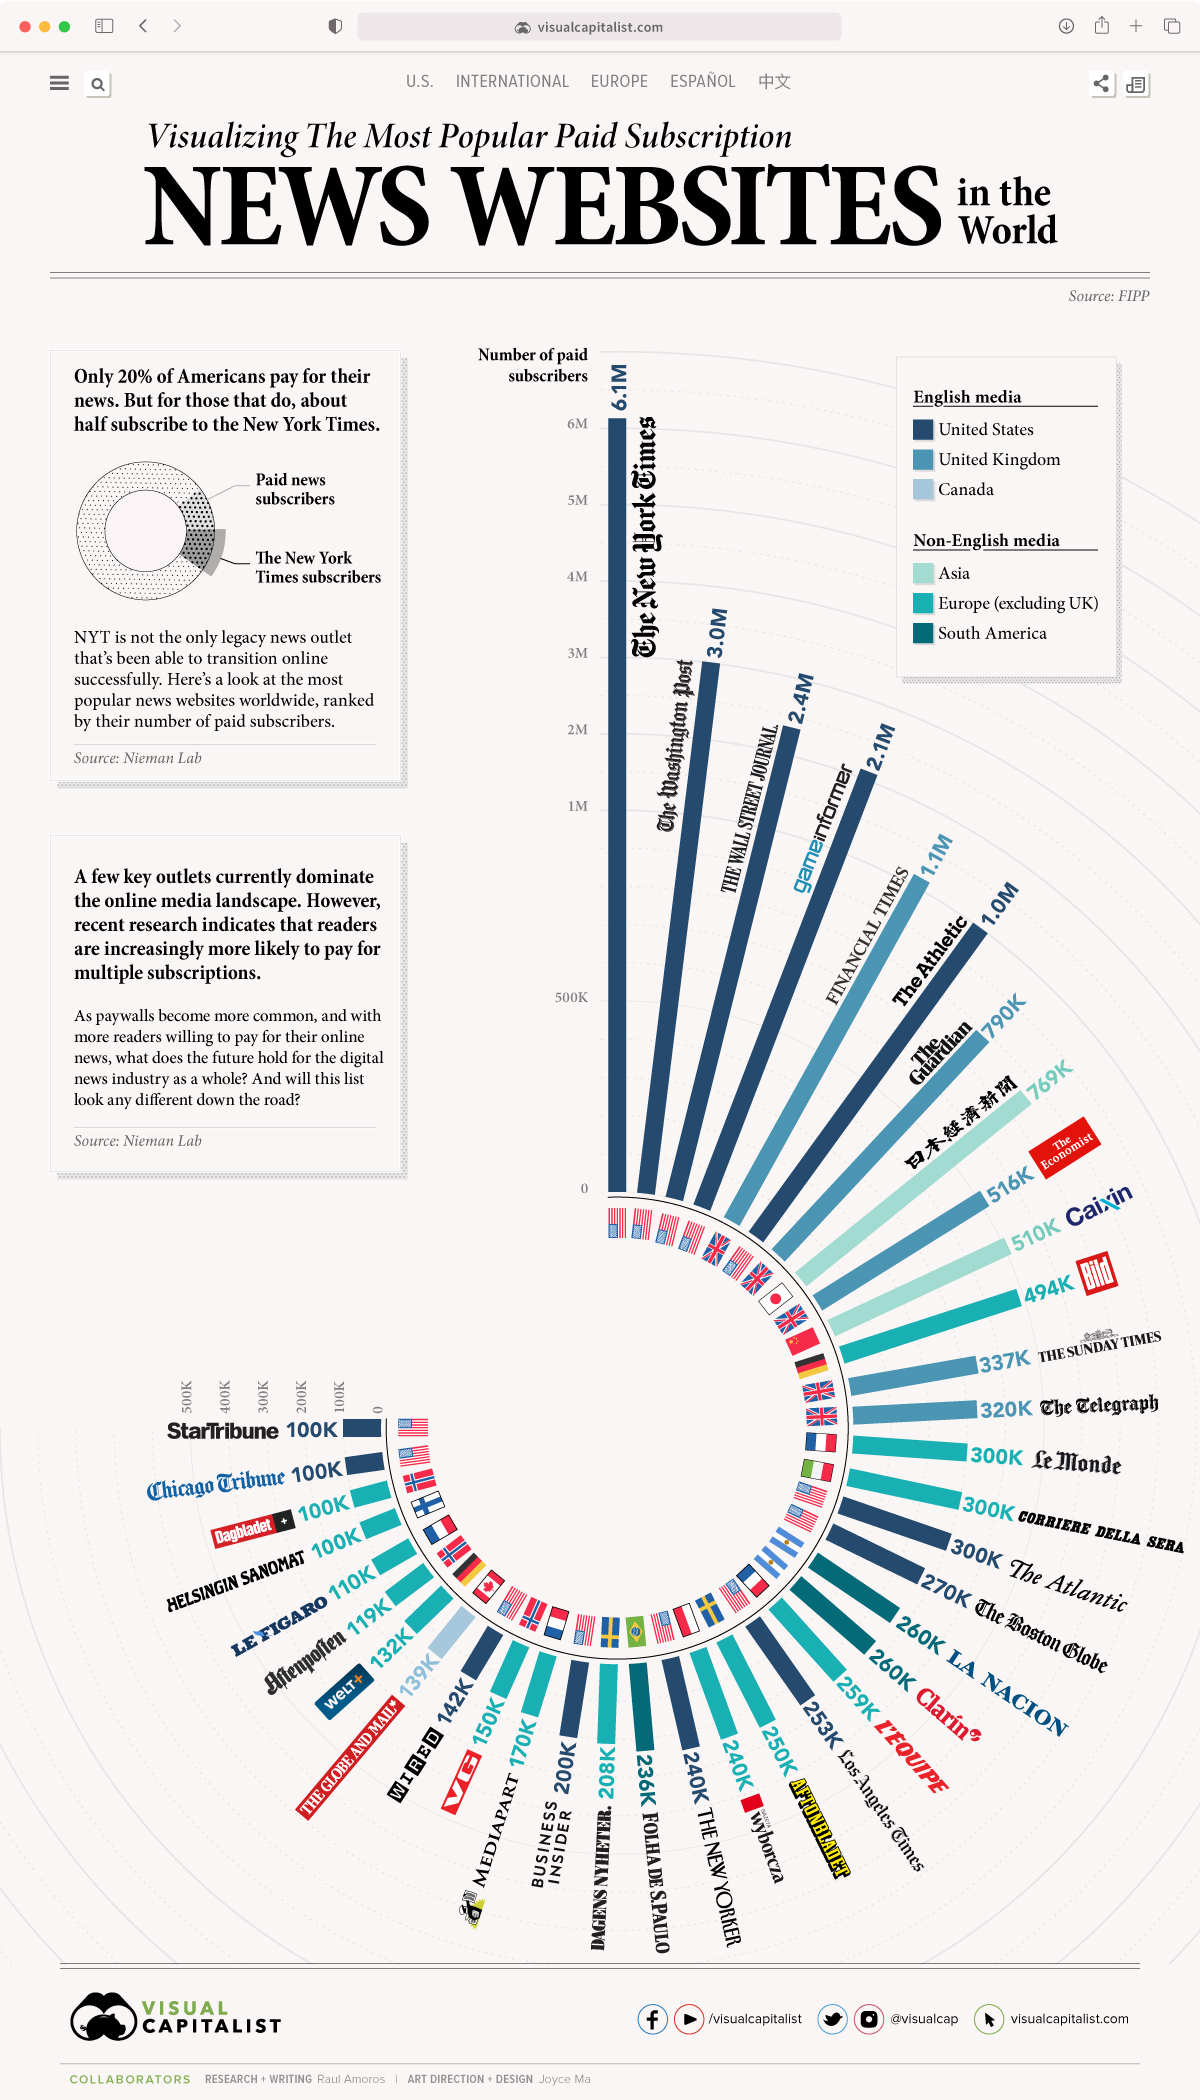 Visualizing the Most Popular Paid Subscription News Websites